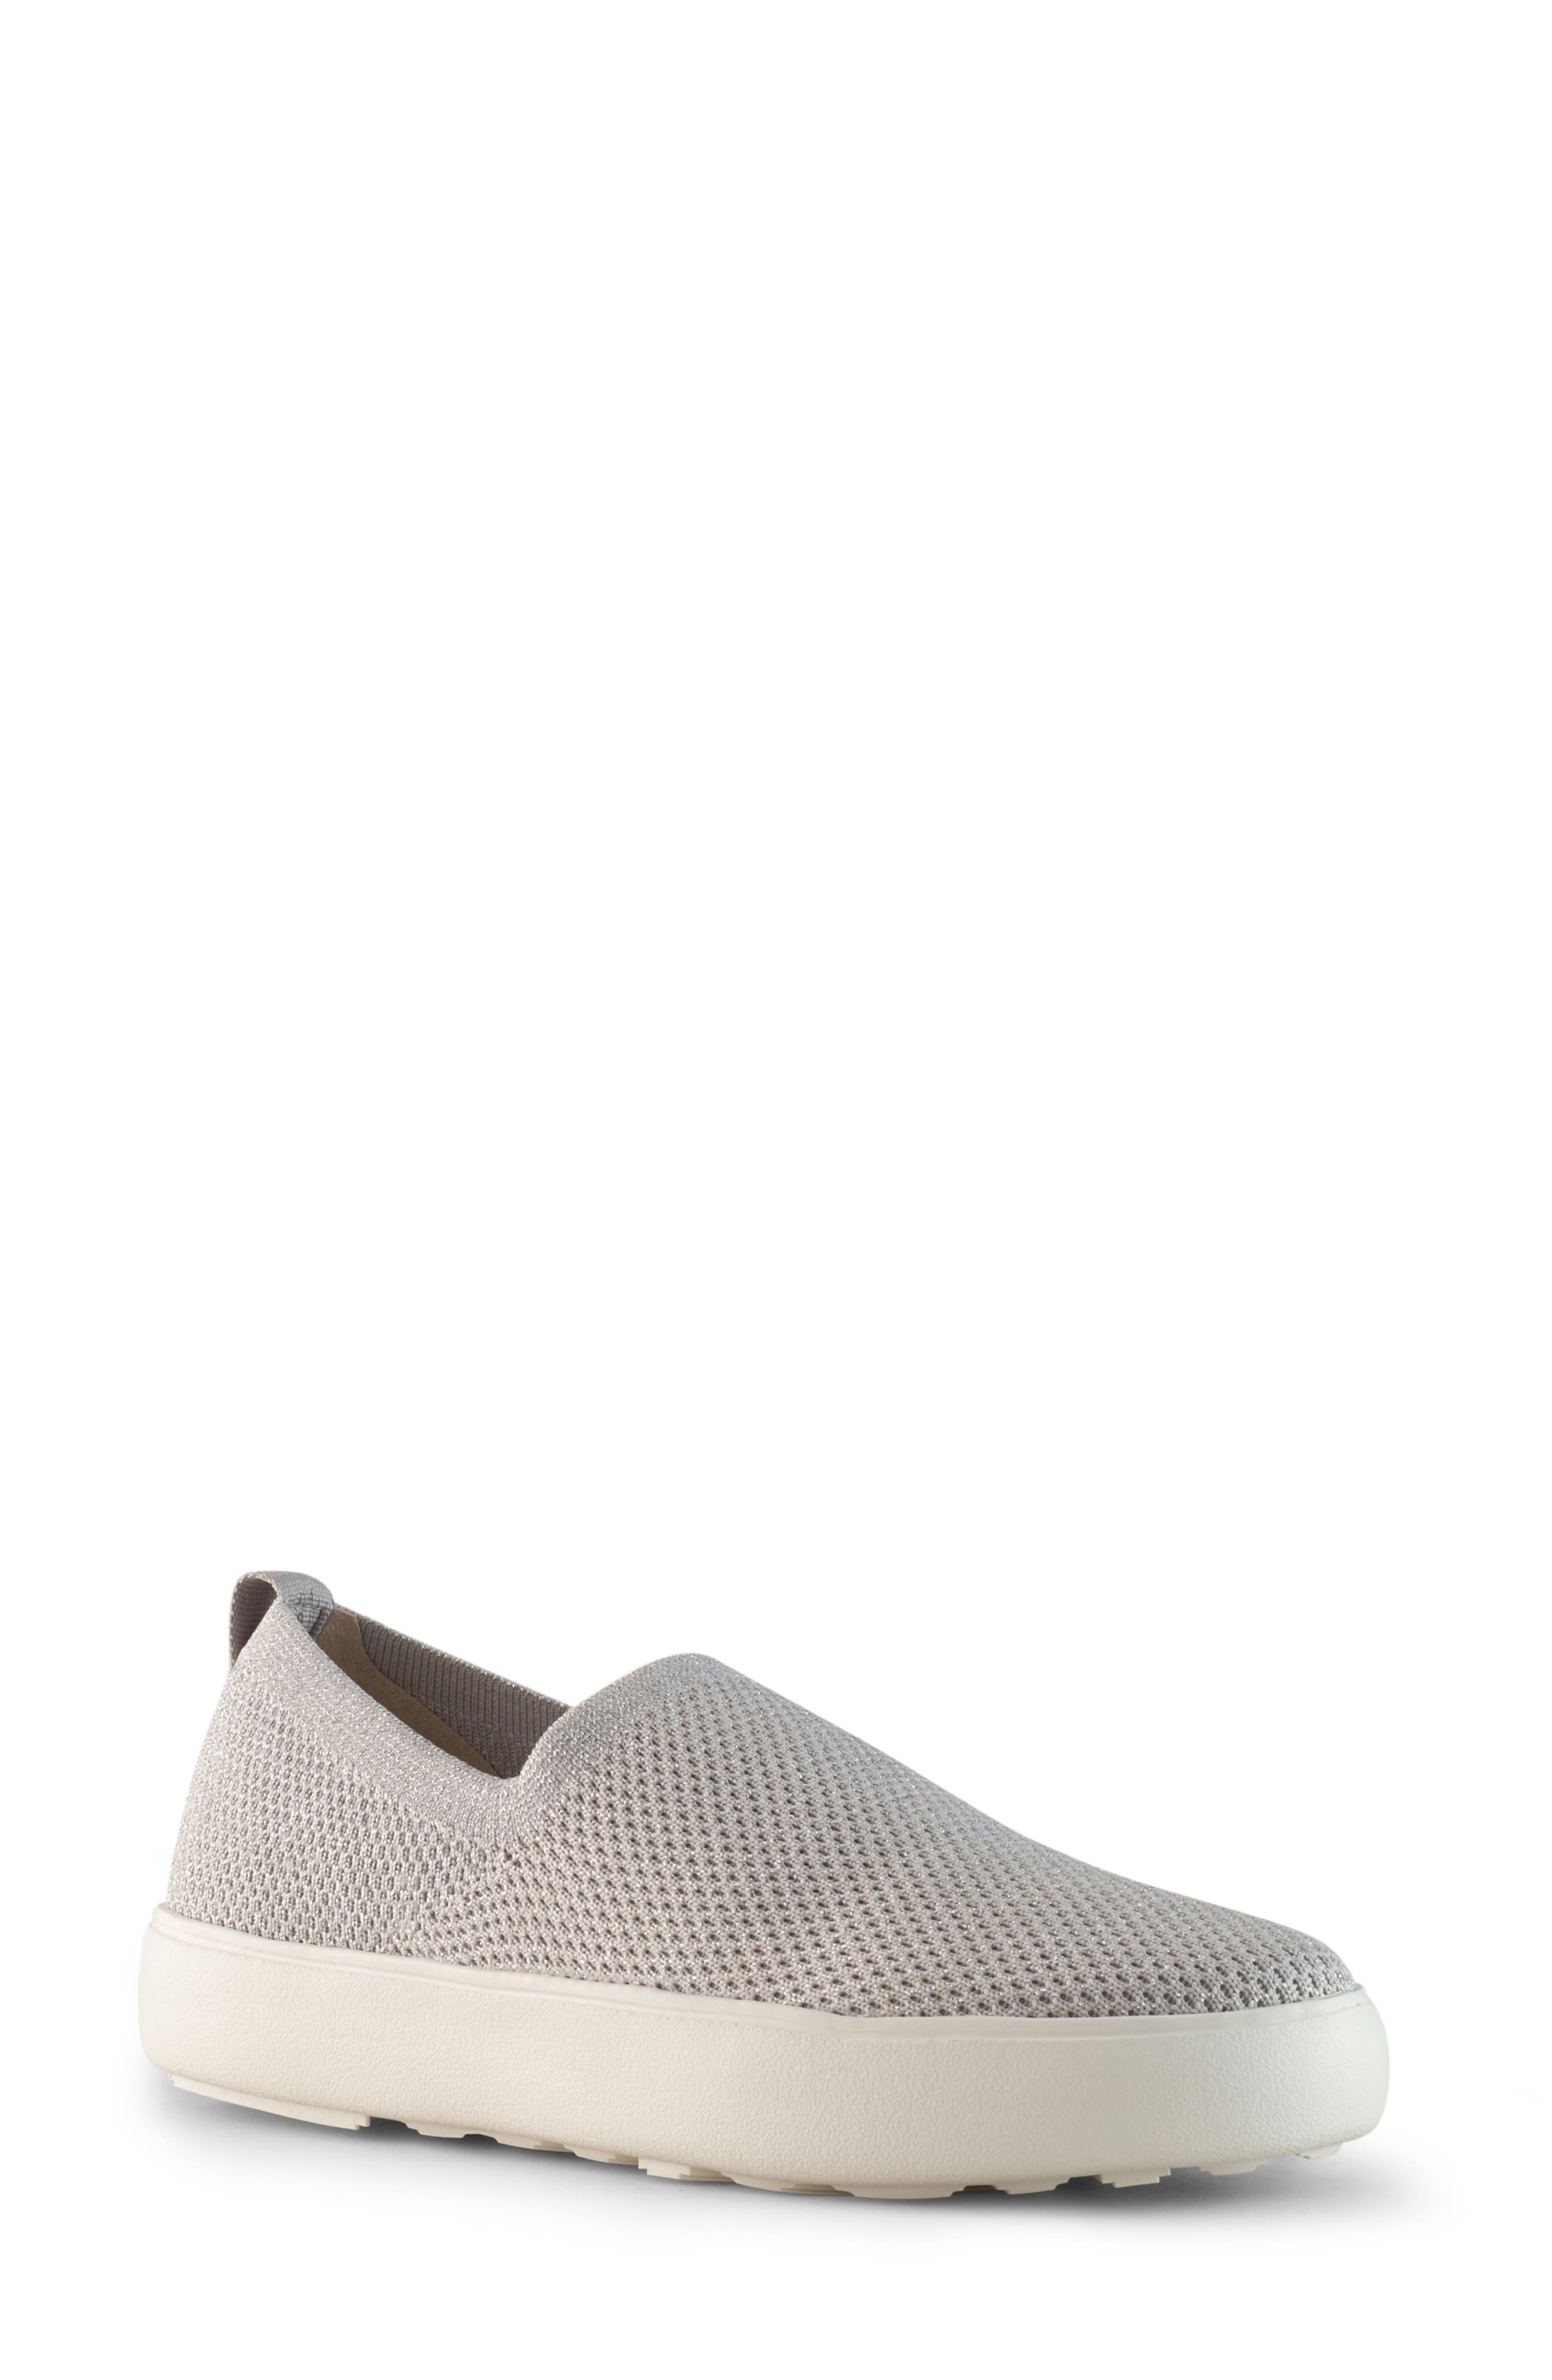 Coach Katie Khaki Chestnut Signature C Sneaker Size 7 Fabric Slip On Shoes Comfy Complete In Specifications Clothing, Shoes & Accessories Athletic Shoes